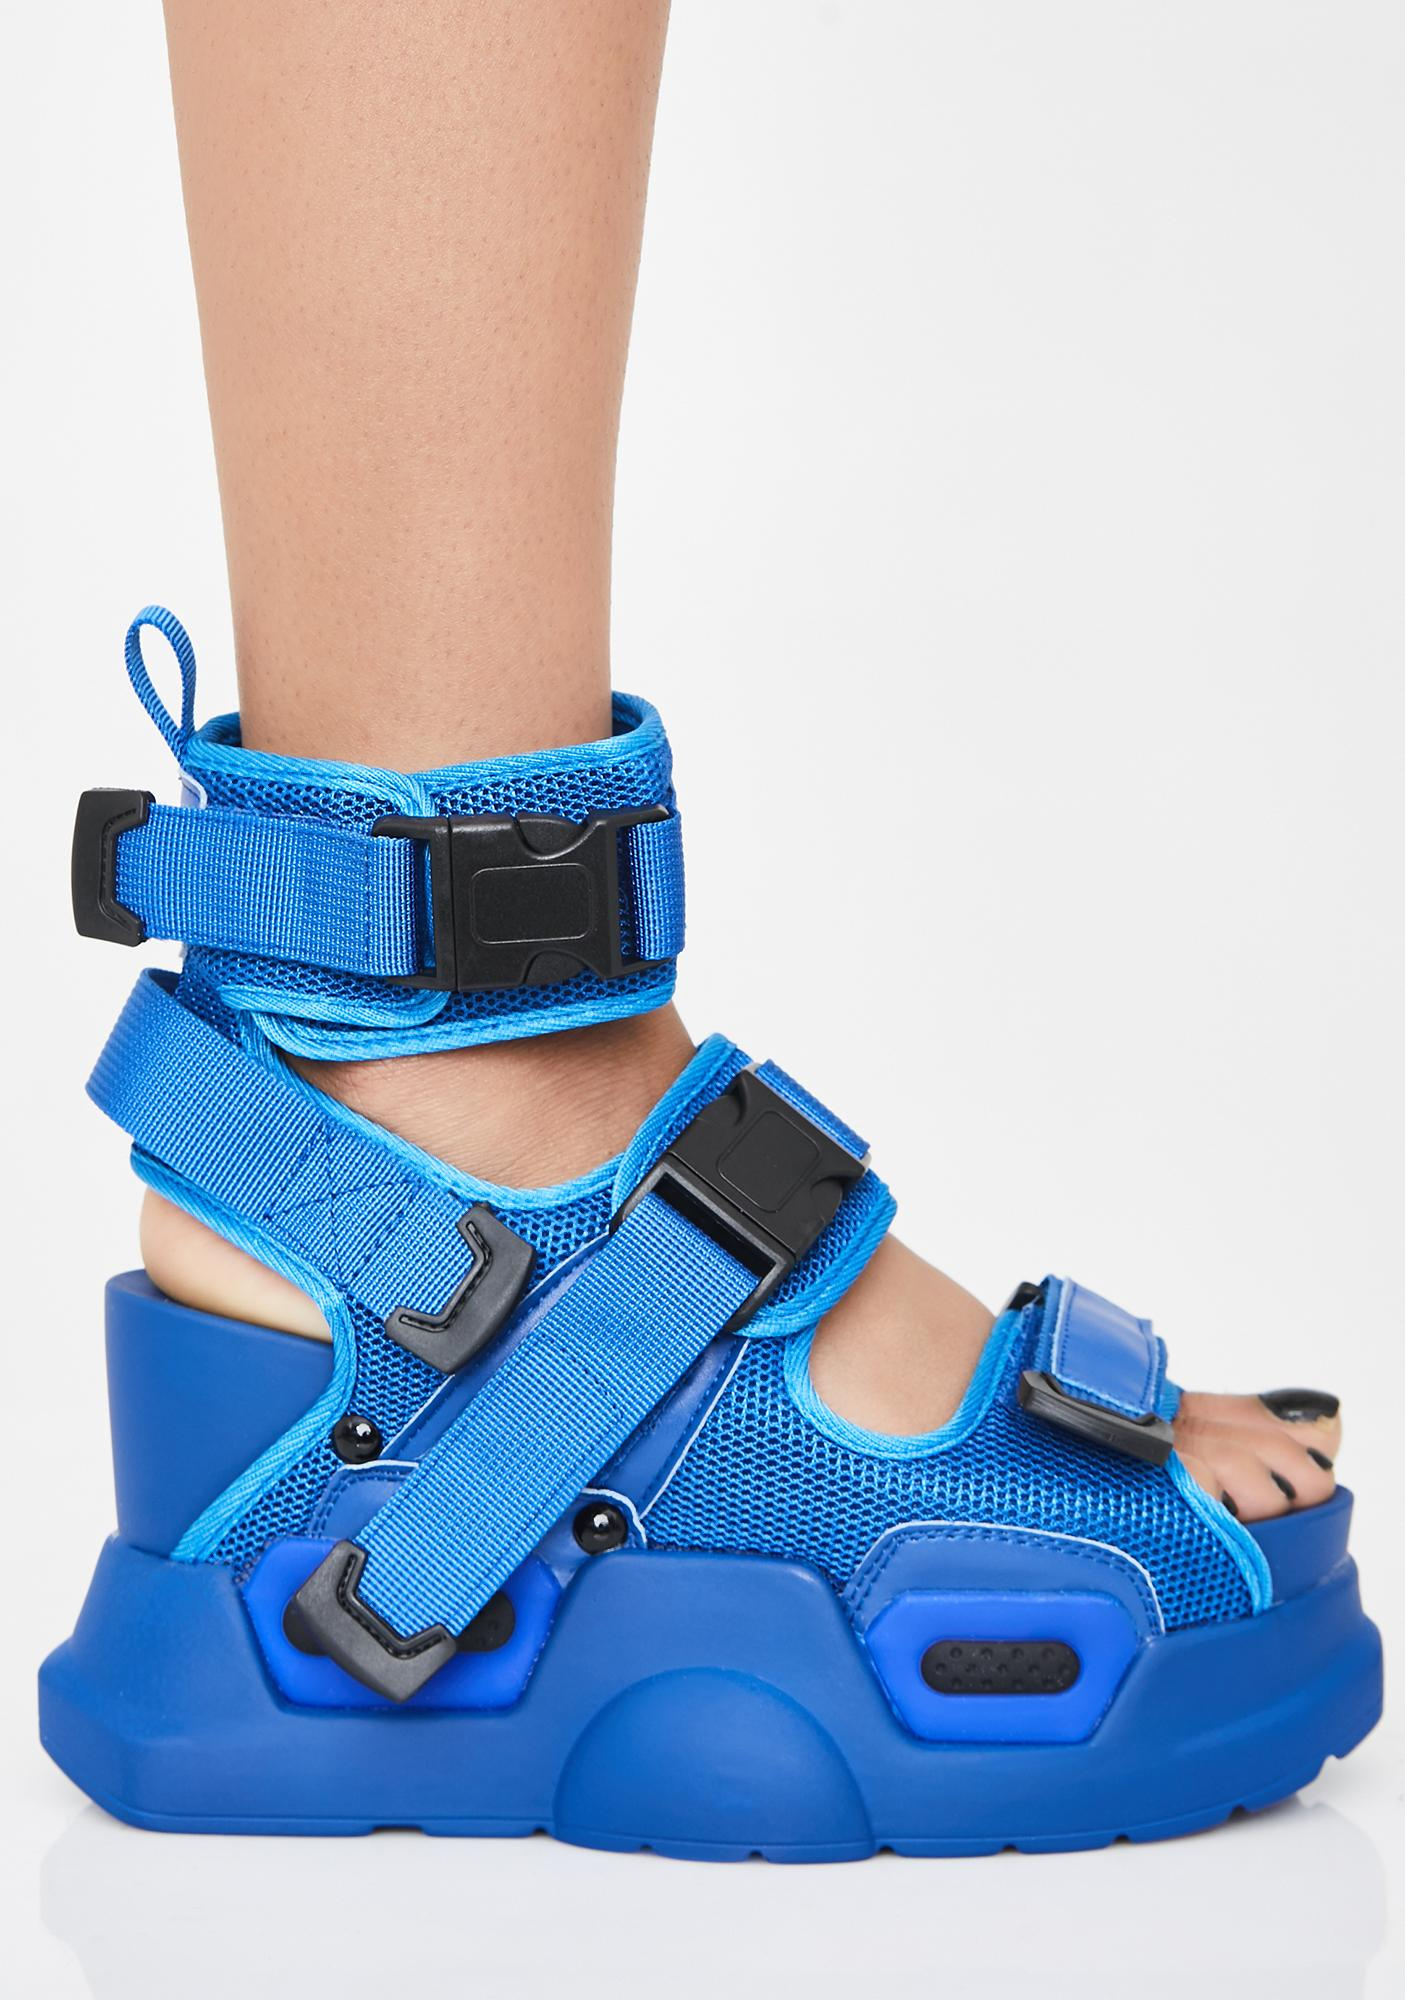 Anthony Wang Wavy Daily Hustle Platform Sandals